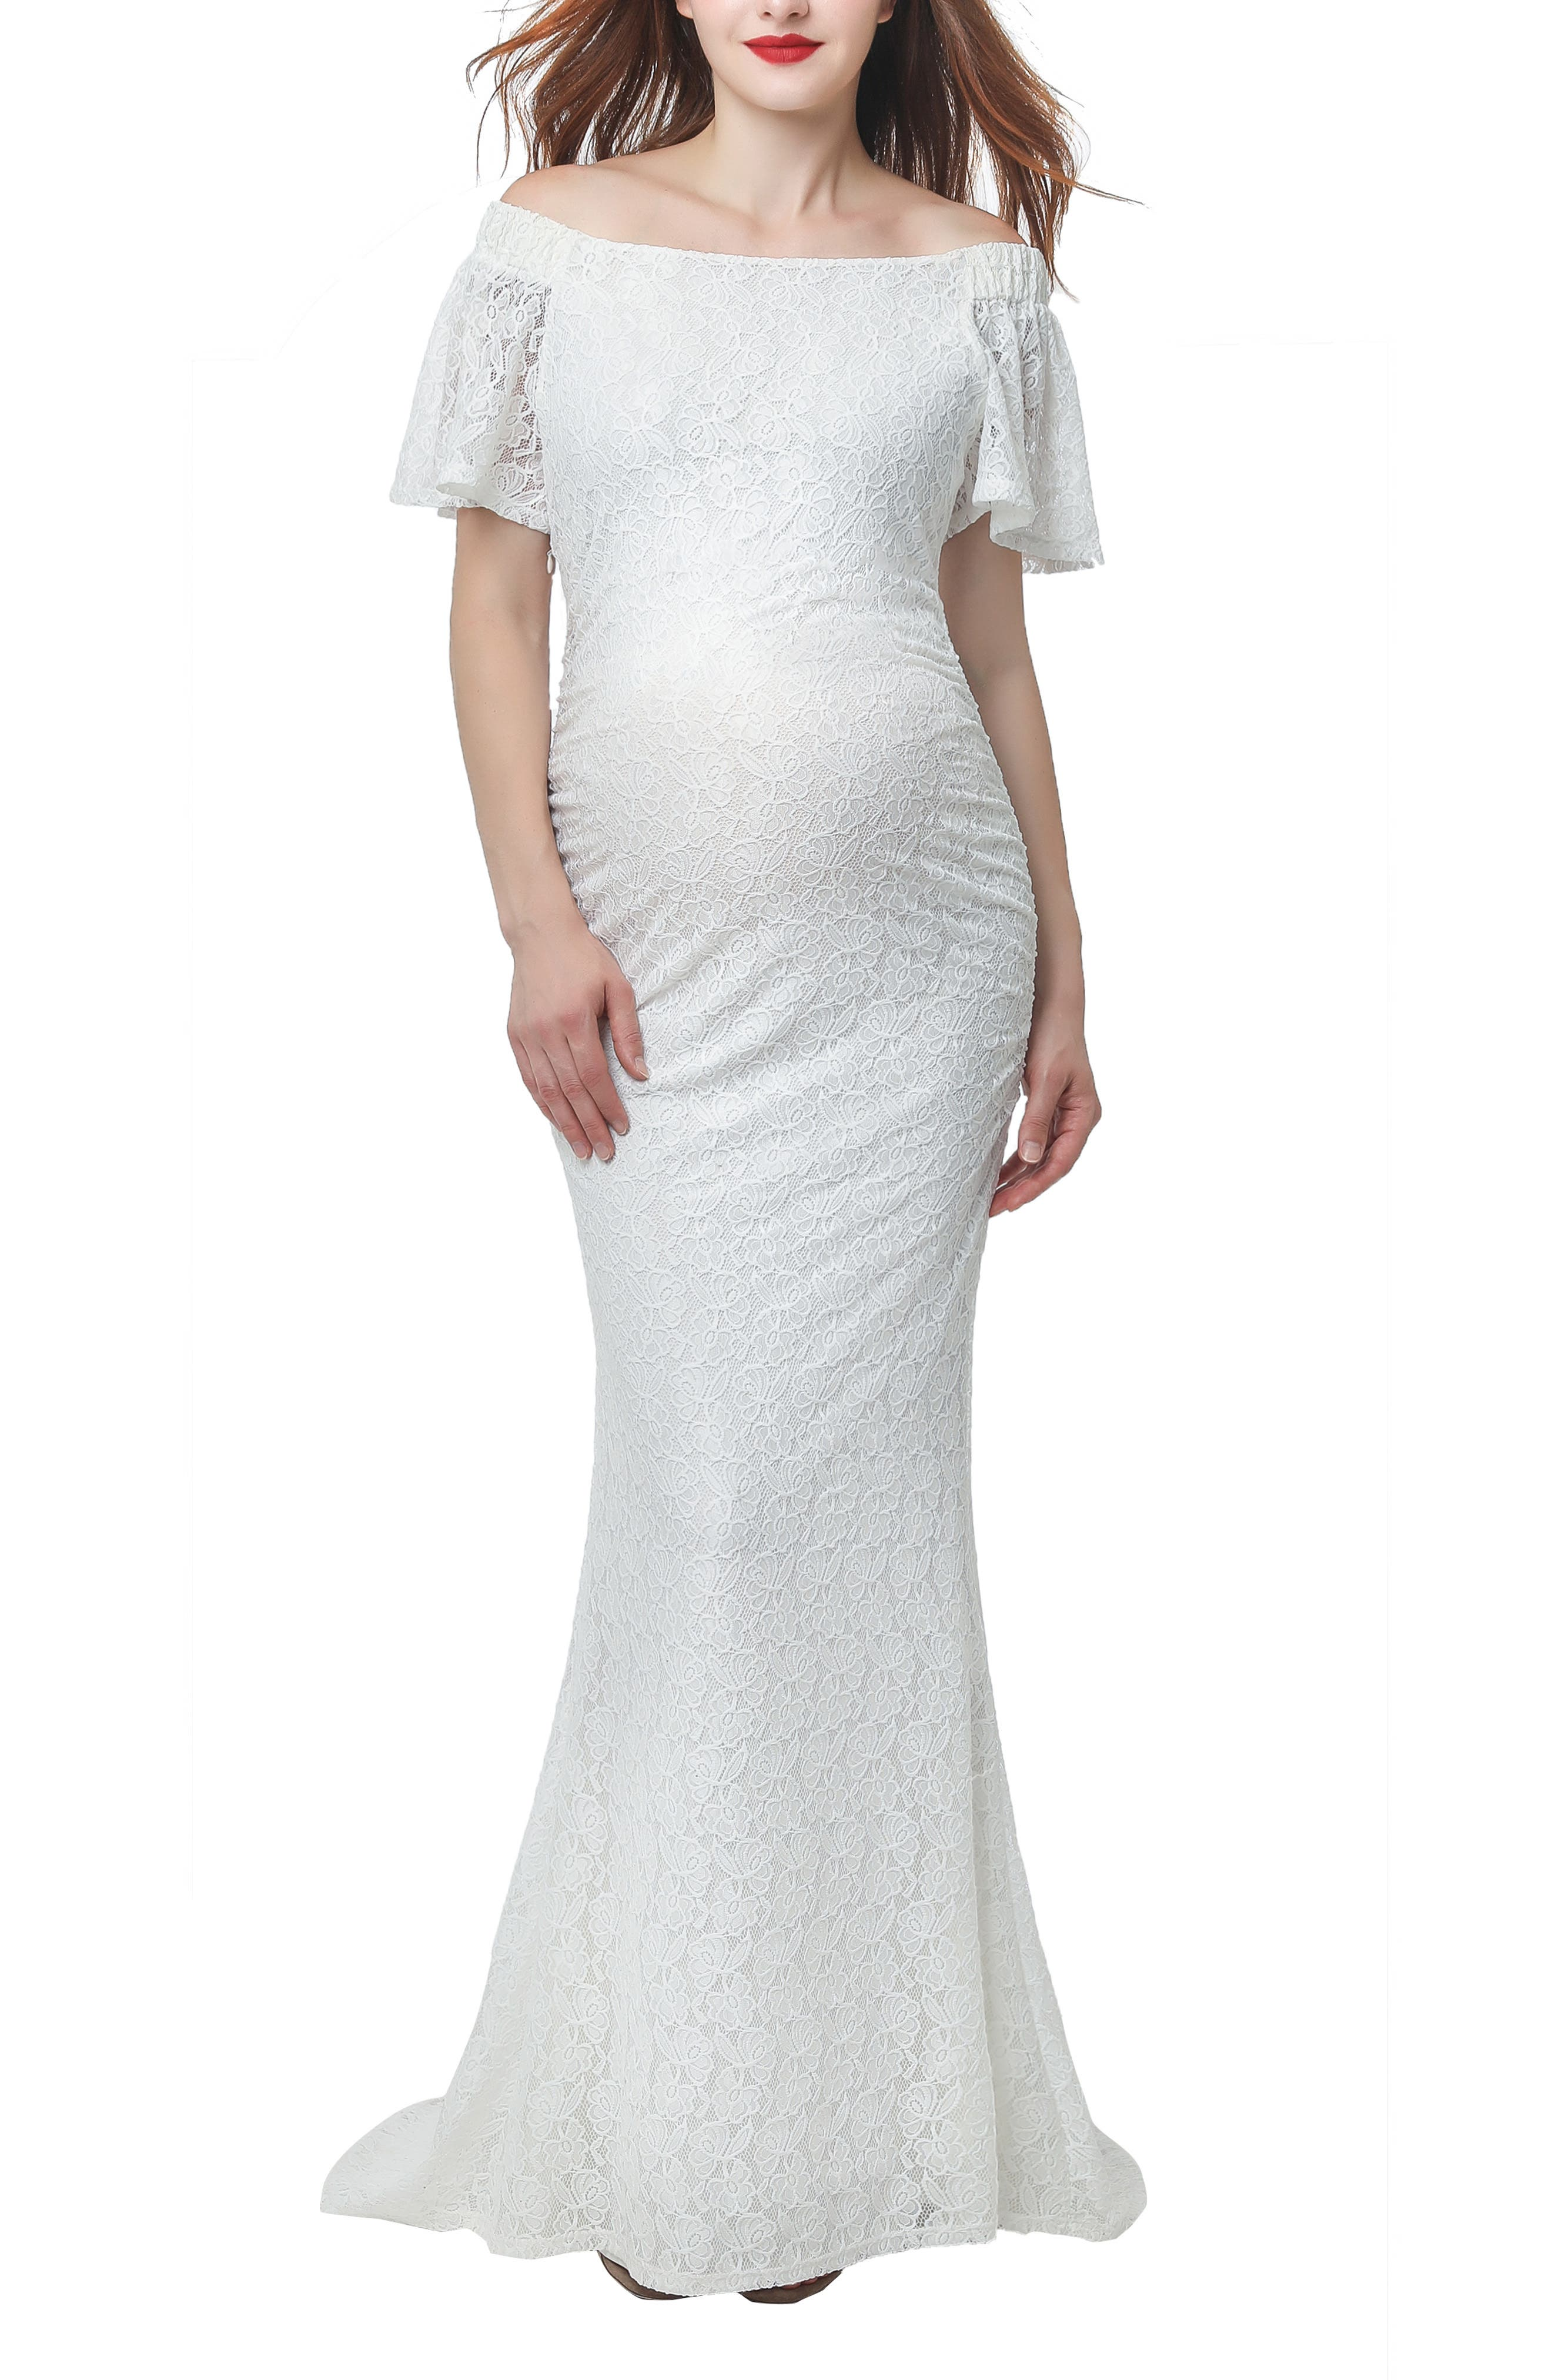 Kimi & Kai Eloise Convertible Off The Shoulder Maternity Wedding Dress